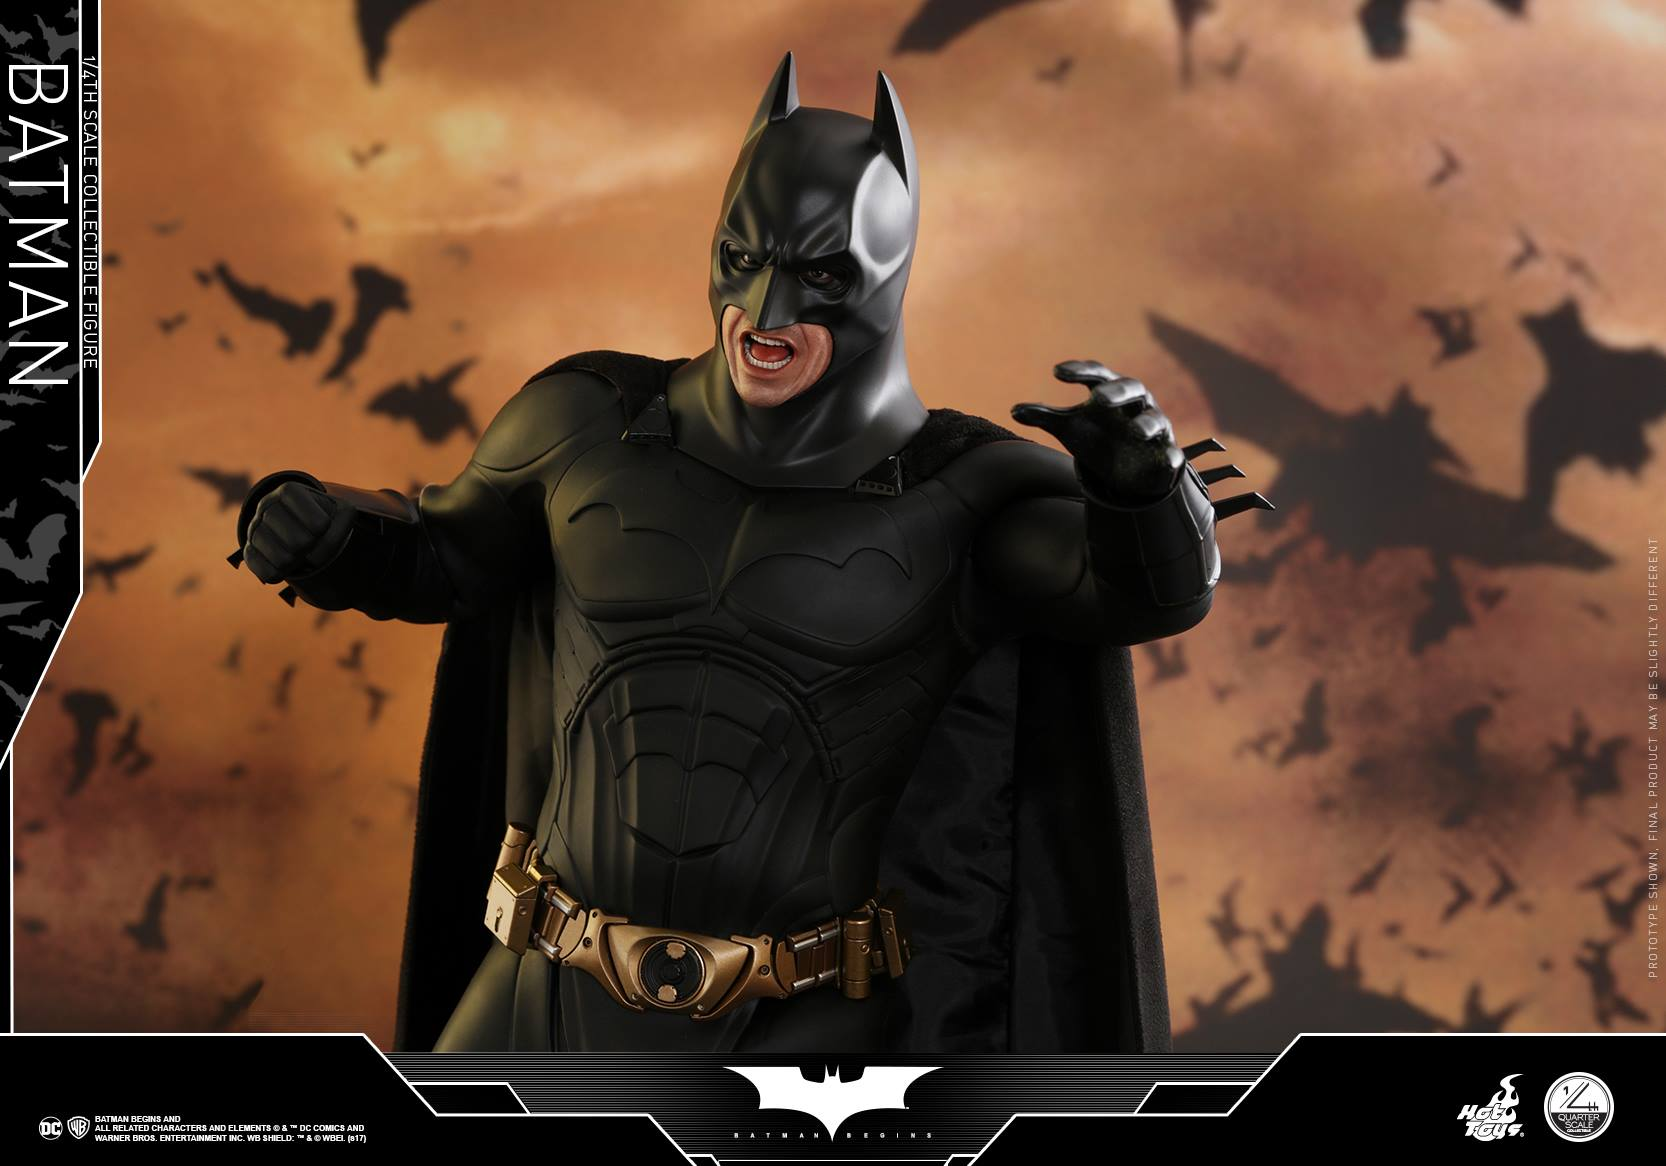 Quarter Scale CHRISTIAN BALE AS BATMAN, THE DARK KNIGHT